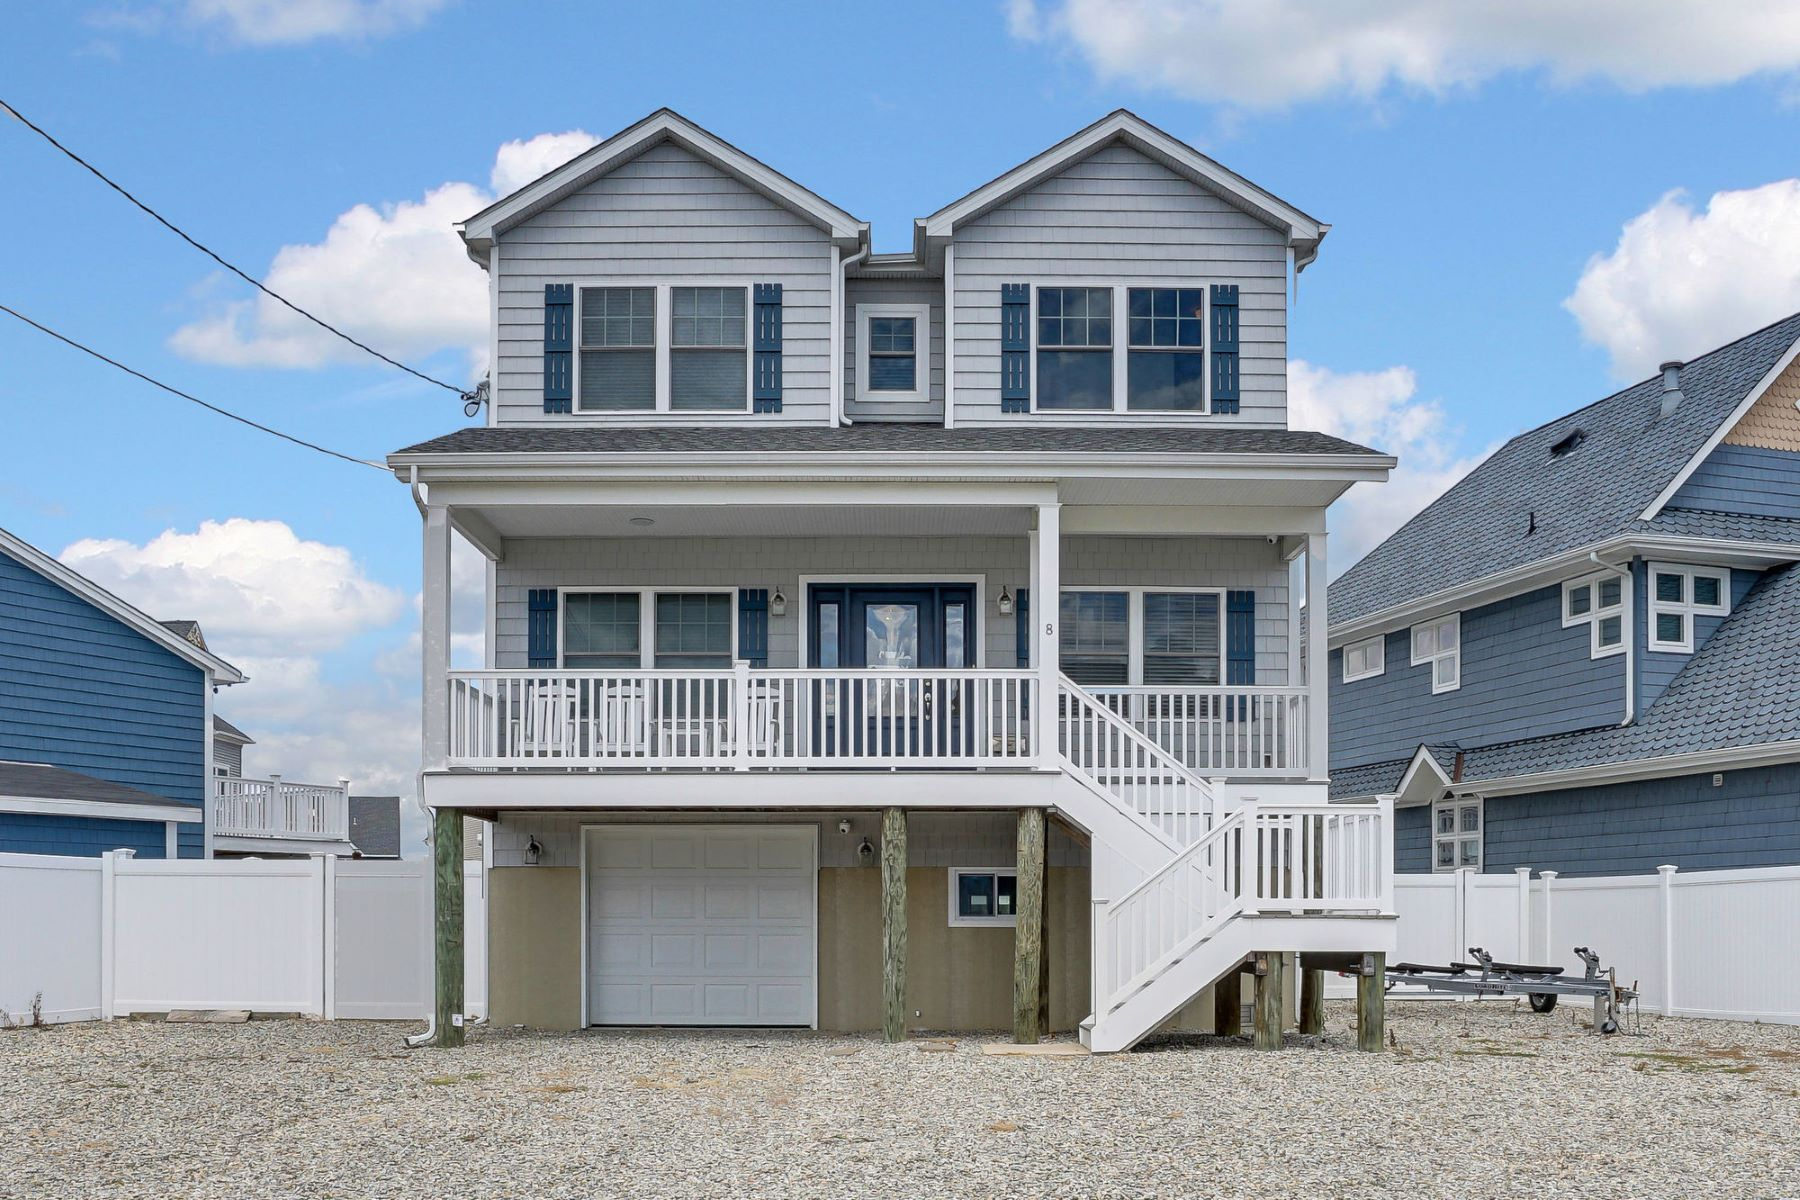 Single Family Homes for Active at Spectacular Newer Construction Lagoon Front Home 8 6th Terrace Ortley Beach, New Jersey 08751 United States